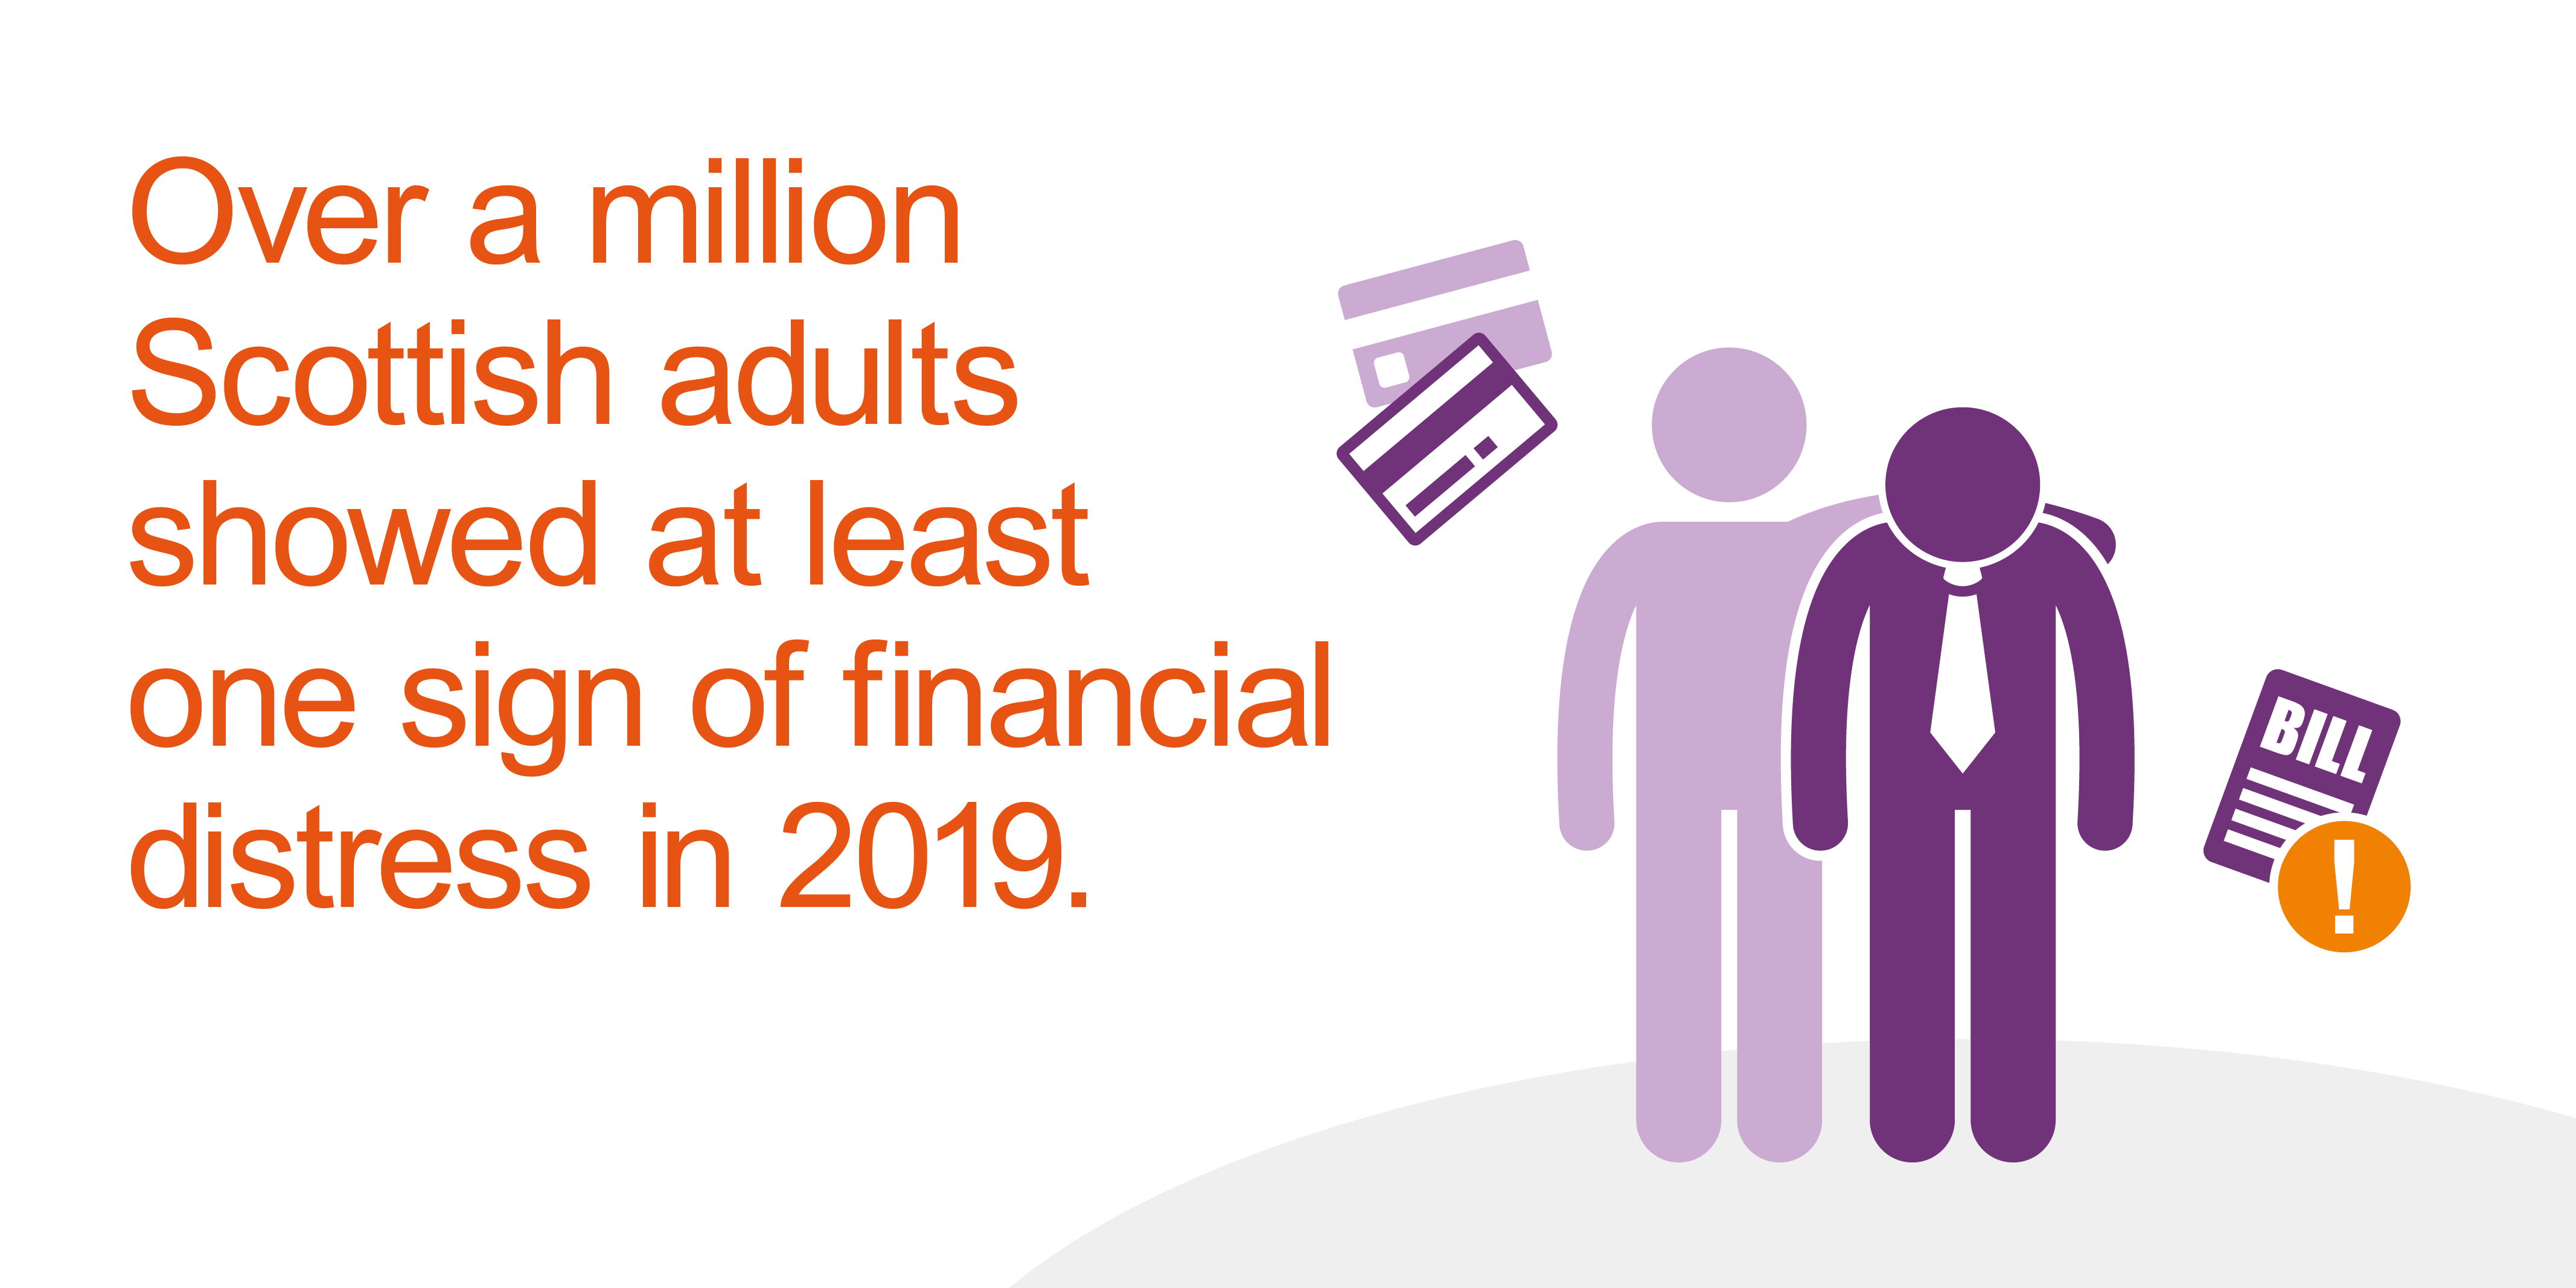 Over one million Scottish adults showed signs of financial distress in 2019